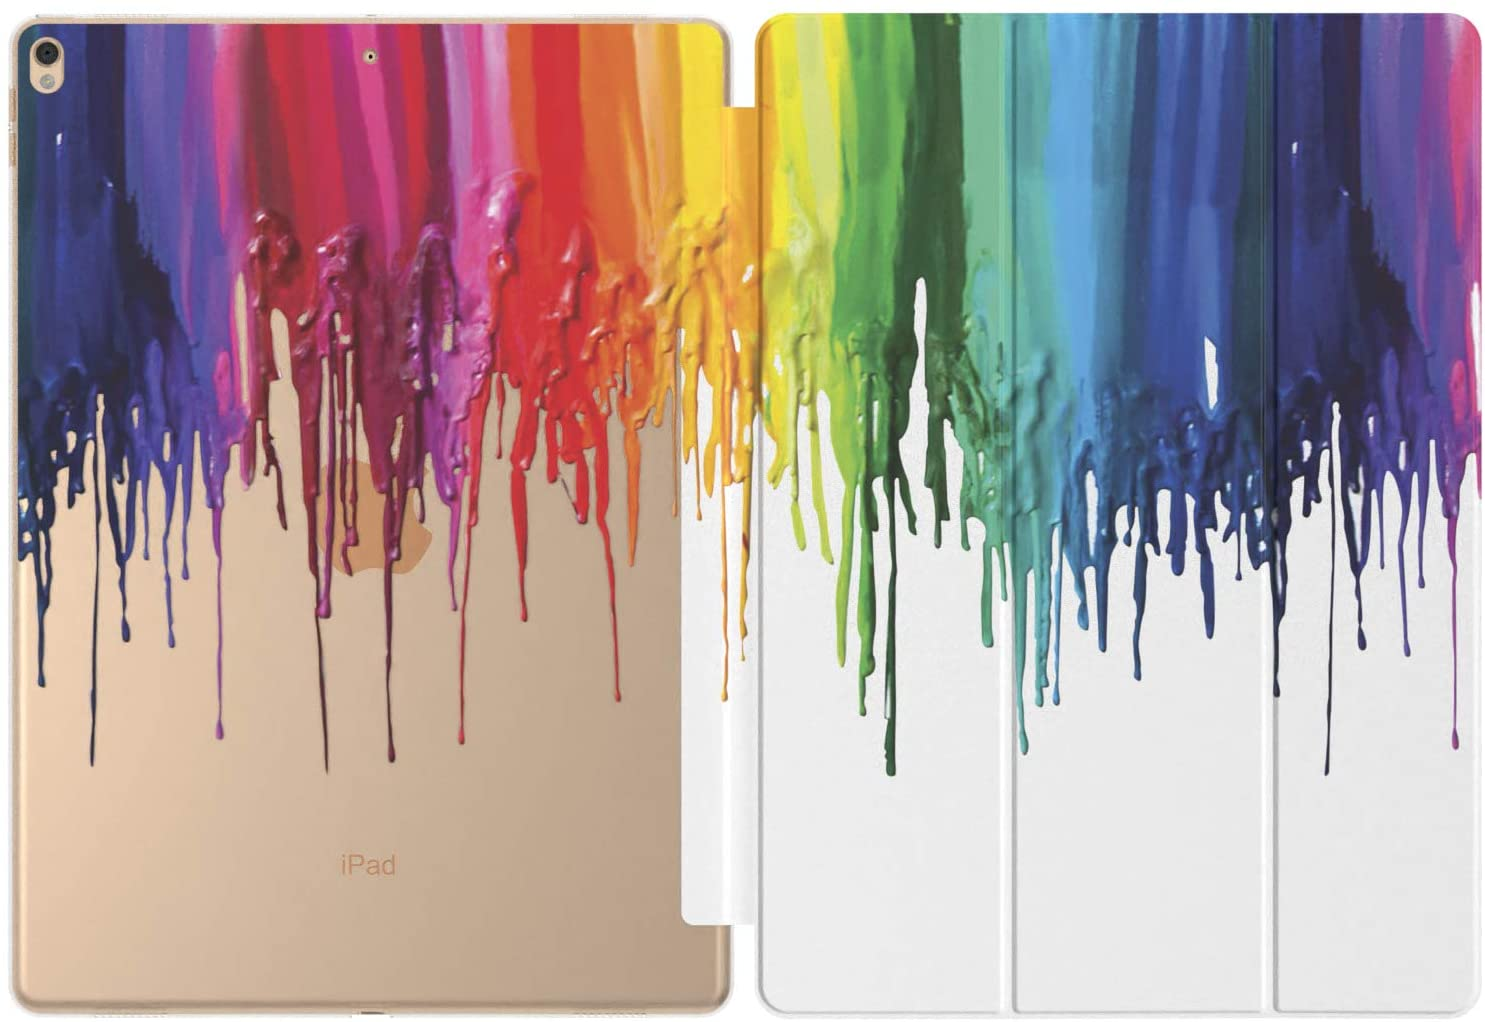 Mertak Case for Apple iPad Pro 11 Air 3 2 10.2 2019 12.9 inch 10.5 9.7 2020 2019 Mini 5 4 6th 7th Rainbow Clear Colorful Art Auto Wake Sleep Paint Abstract Slim Dripping Cute Smart Cover